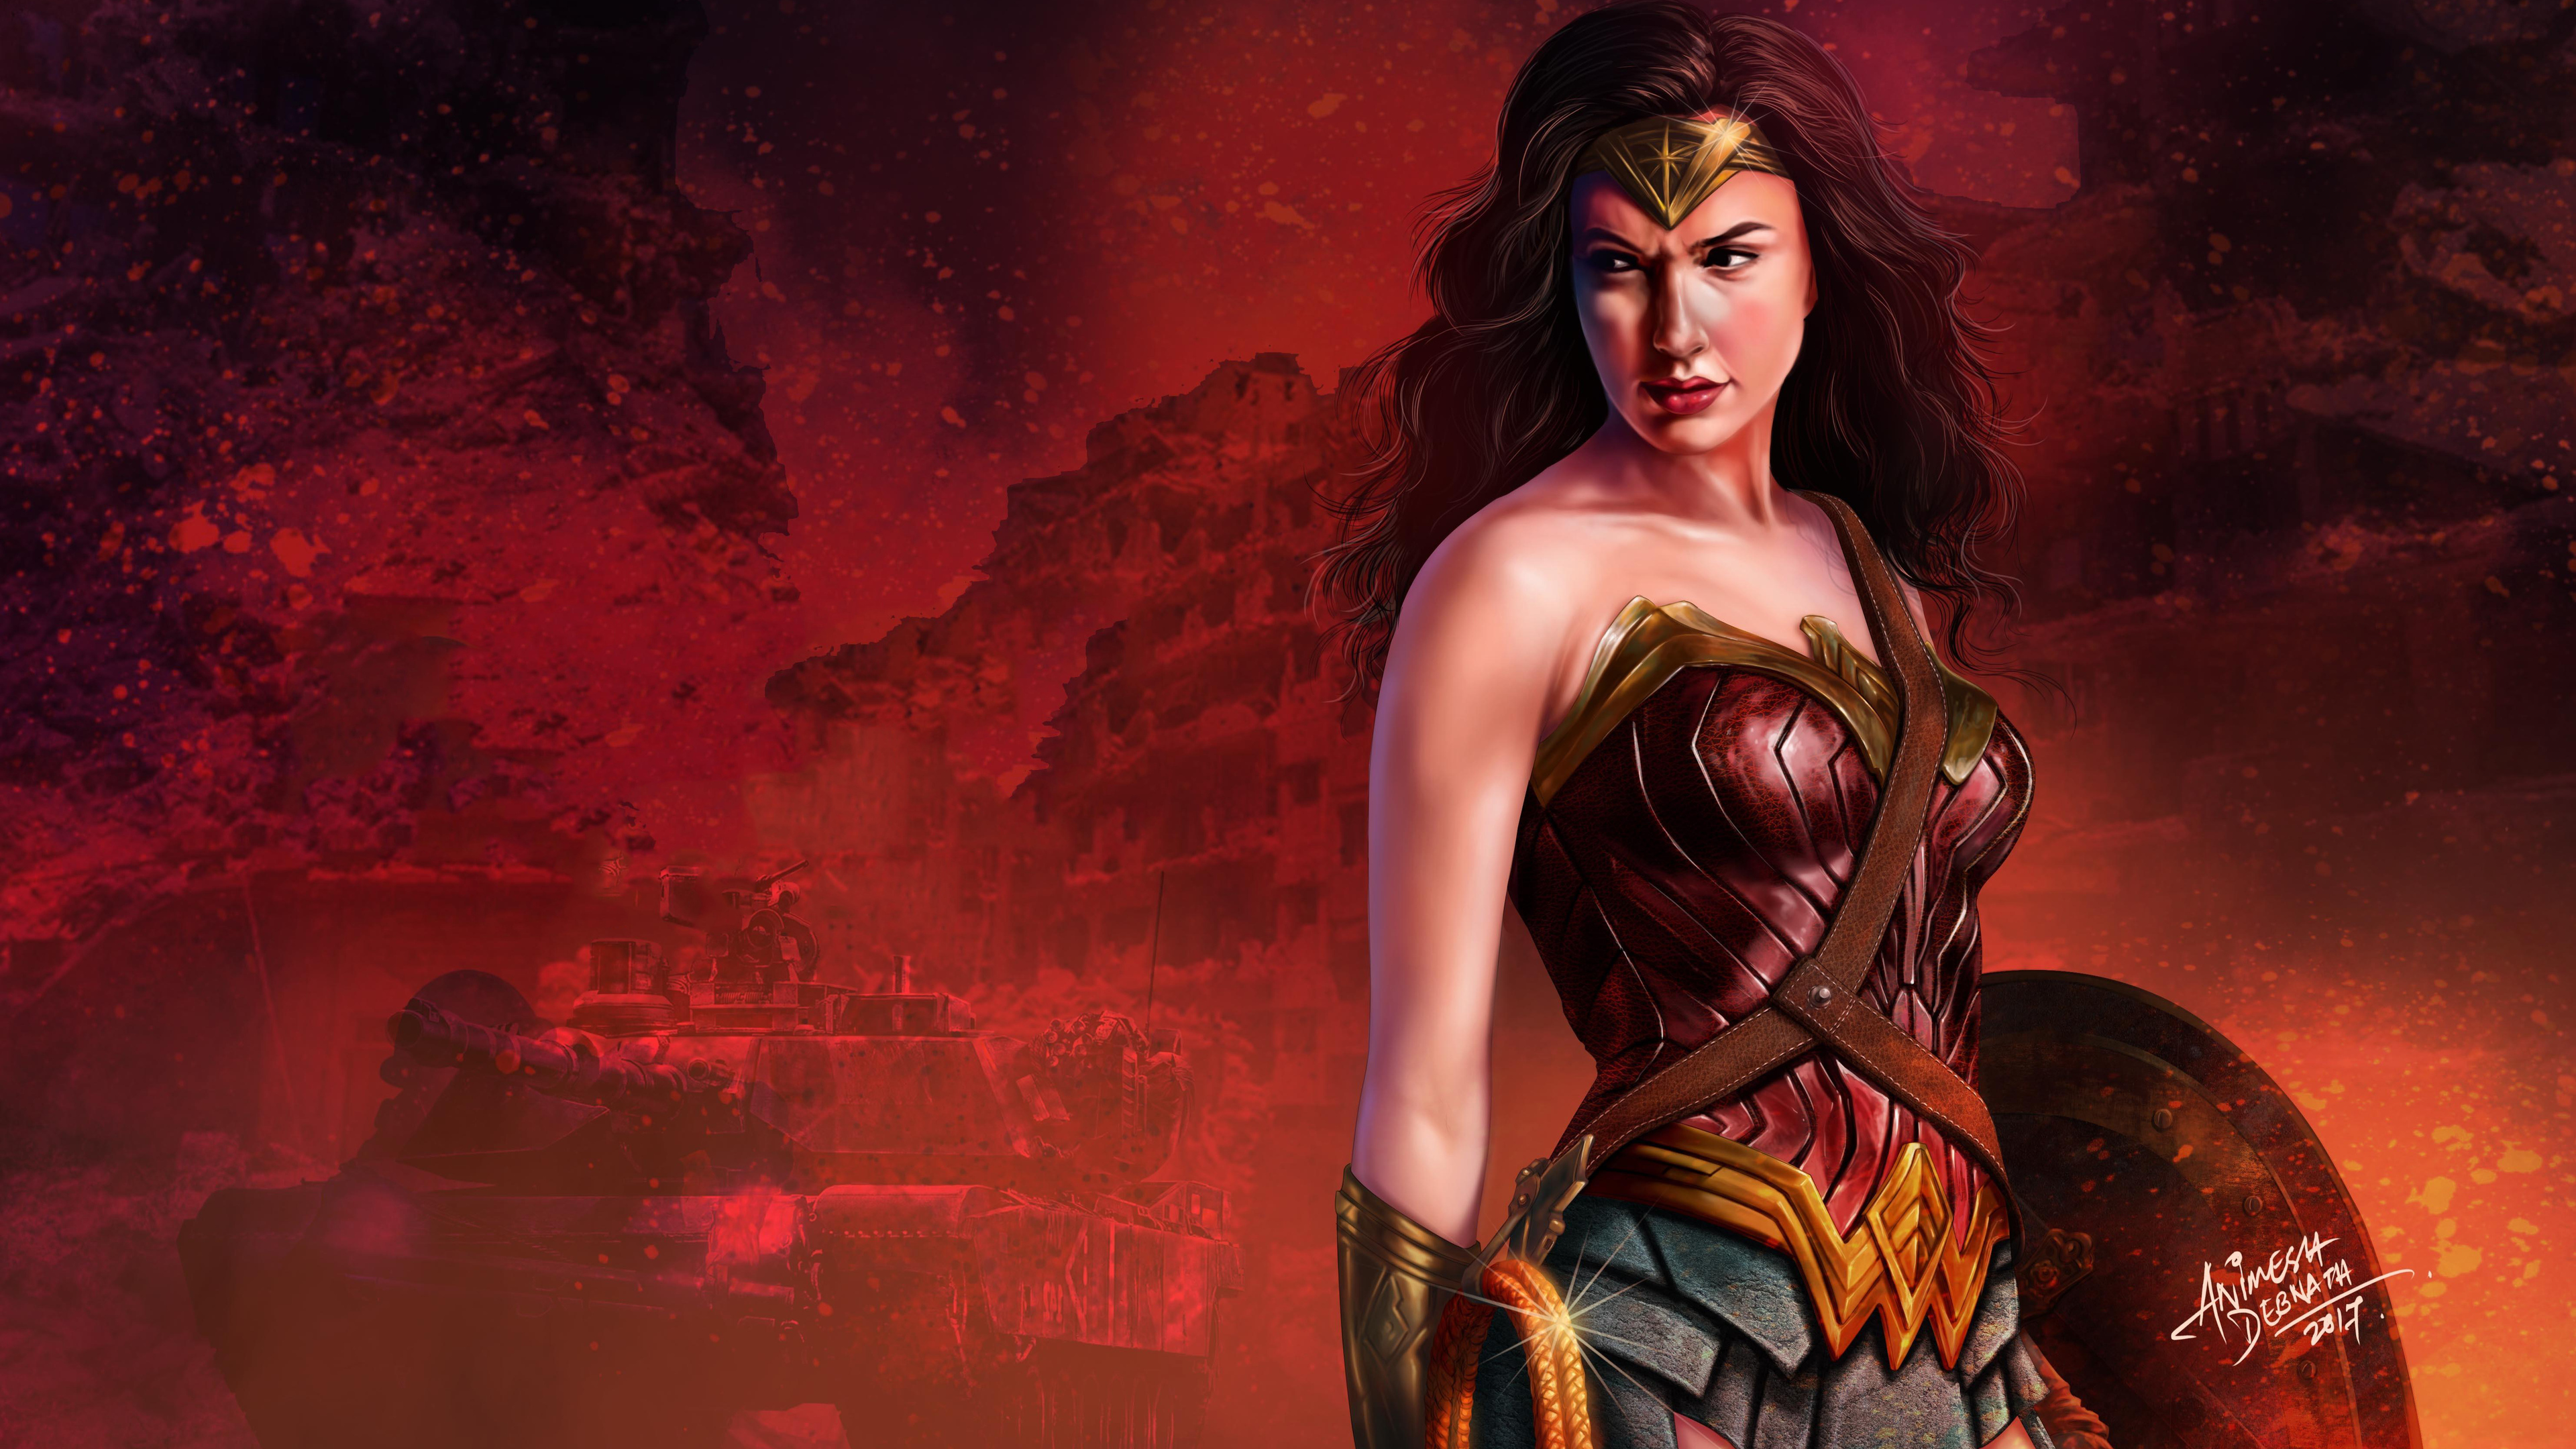 wonder woman 5k gal gadot art 1539452743 - Wonder Woman 5k Gal Gadot Art - wonder woman wallpapers, superheroes wallpapers, hd-wallpapers, digital art wallpapers, diana prince wallpapers, dc comics wallpapers, comic wallpapers, artwork wallpapers, artist wallpapers, 5k wallpapers, 4k-wallpapers